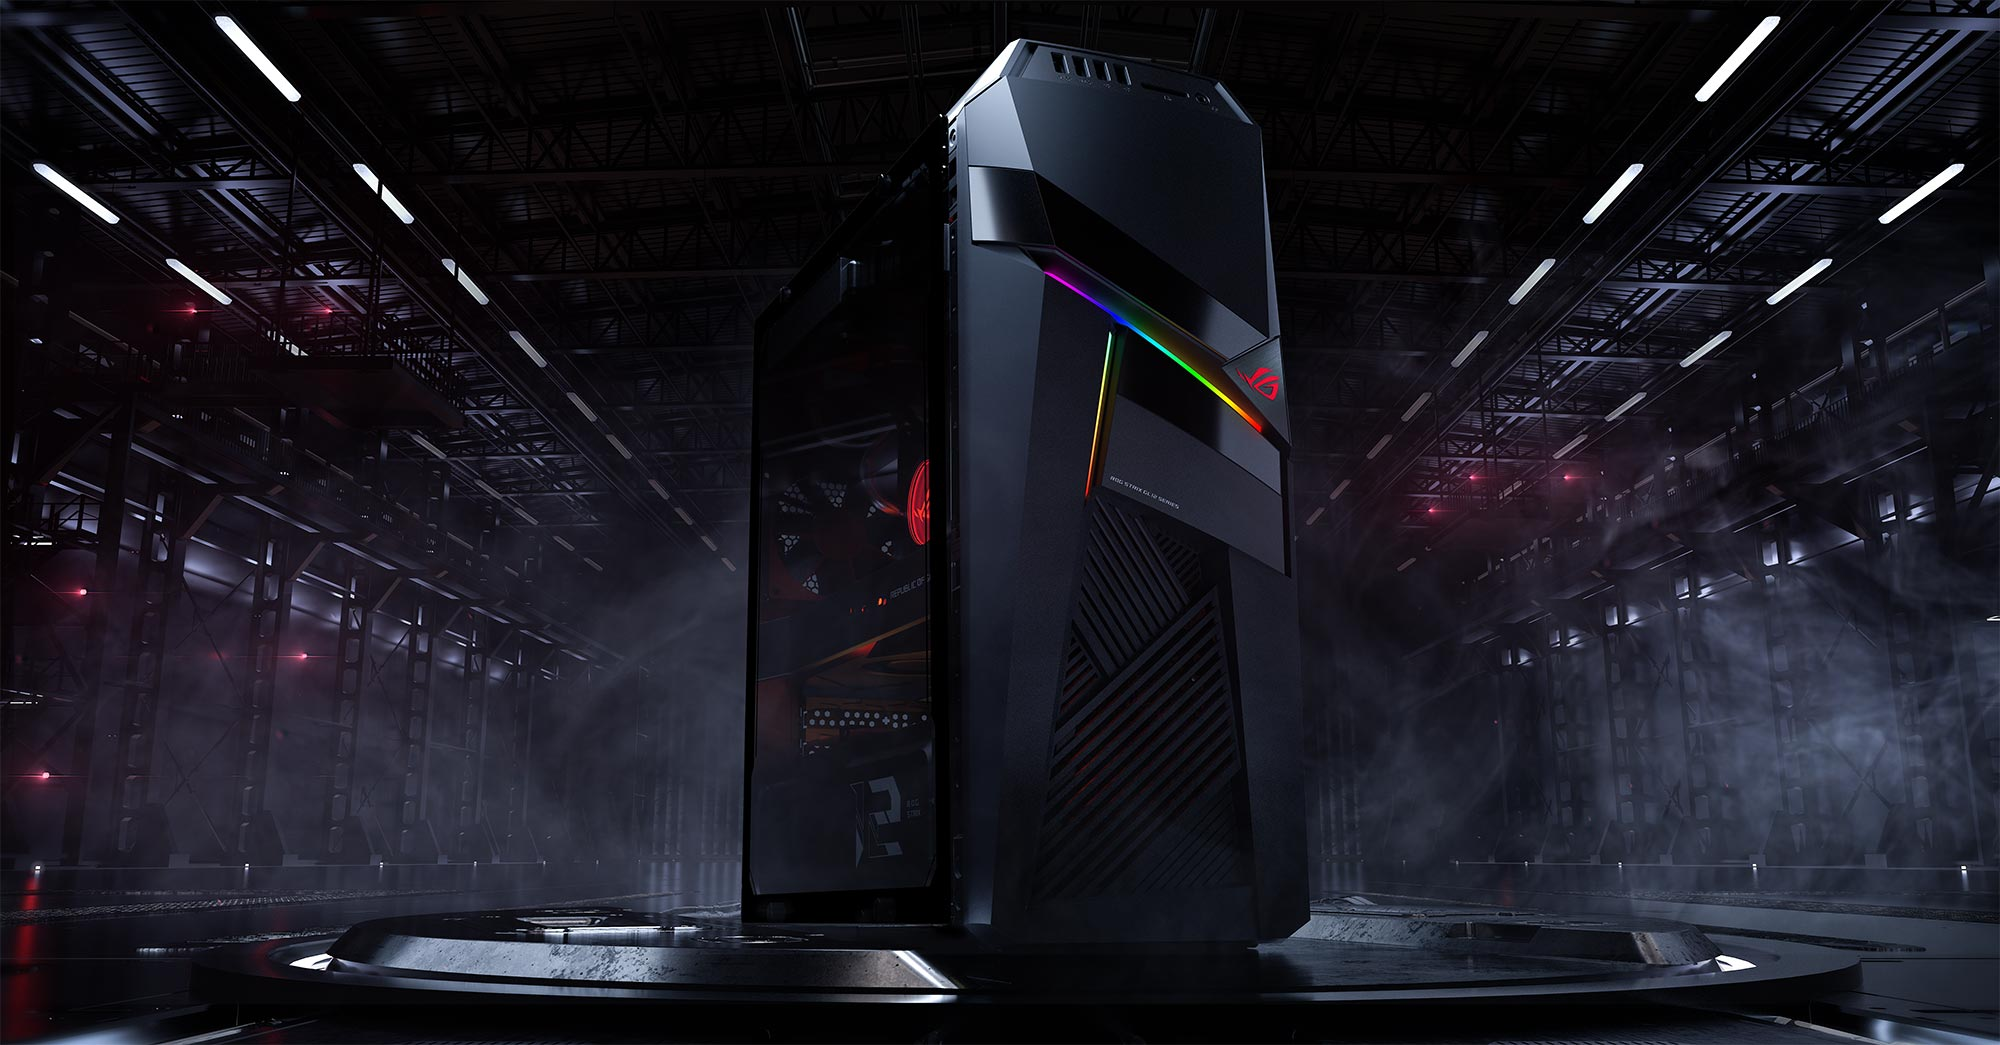 Eight Cpu Cores Meet Rtx Graphics In The Rog Strix Gl12cx